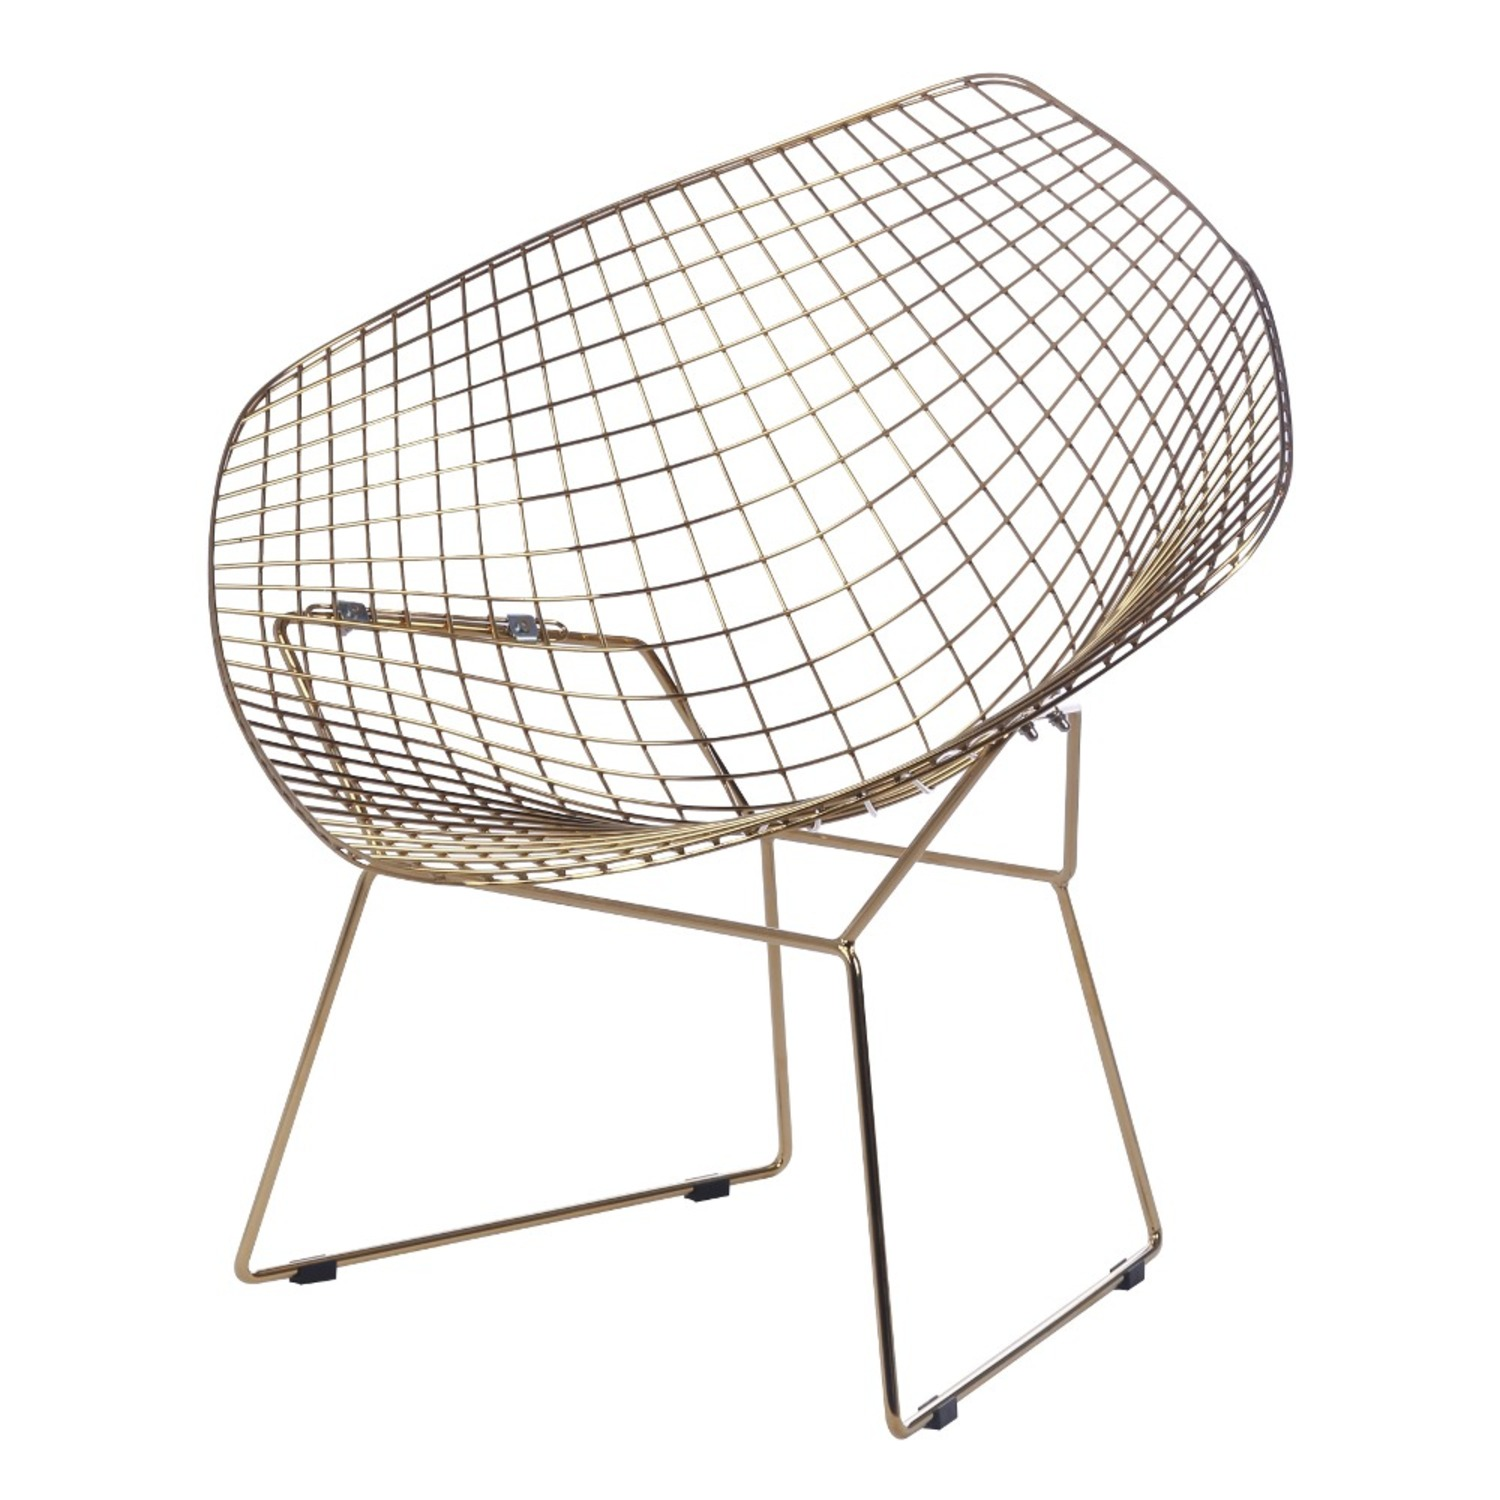 Diamond Chair In Gold Wire W/ Black Leatherette - image-0